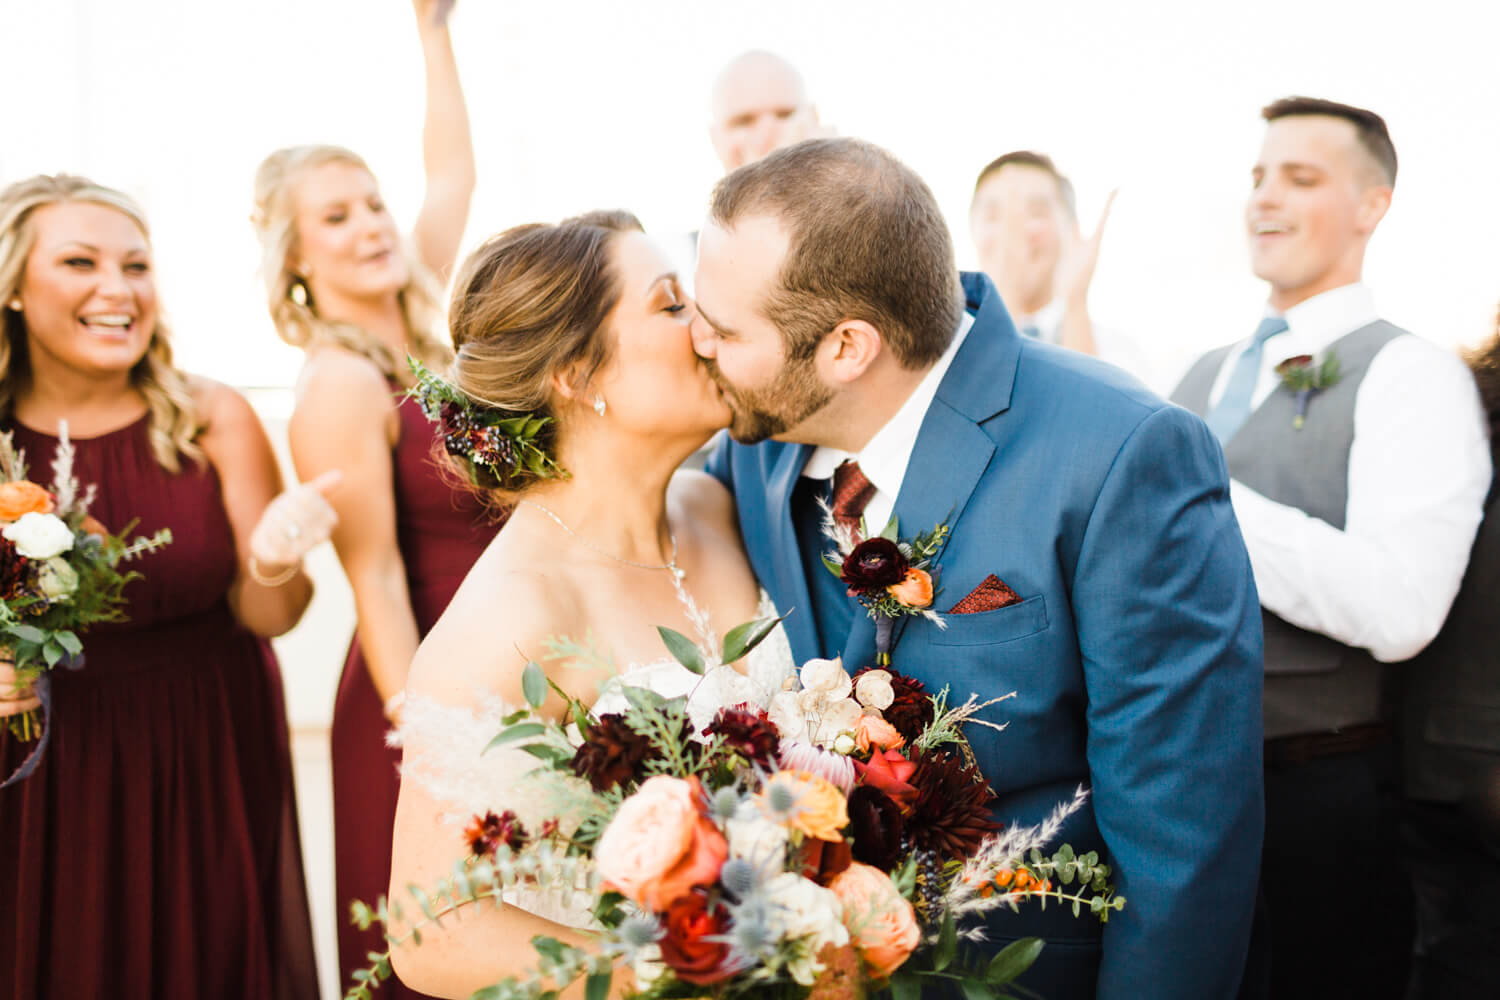 bride and groom kissing with friends cheering behind